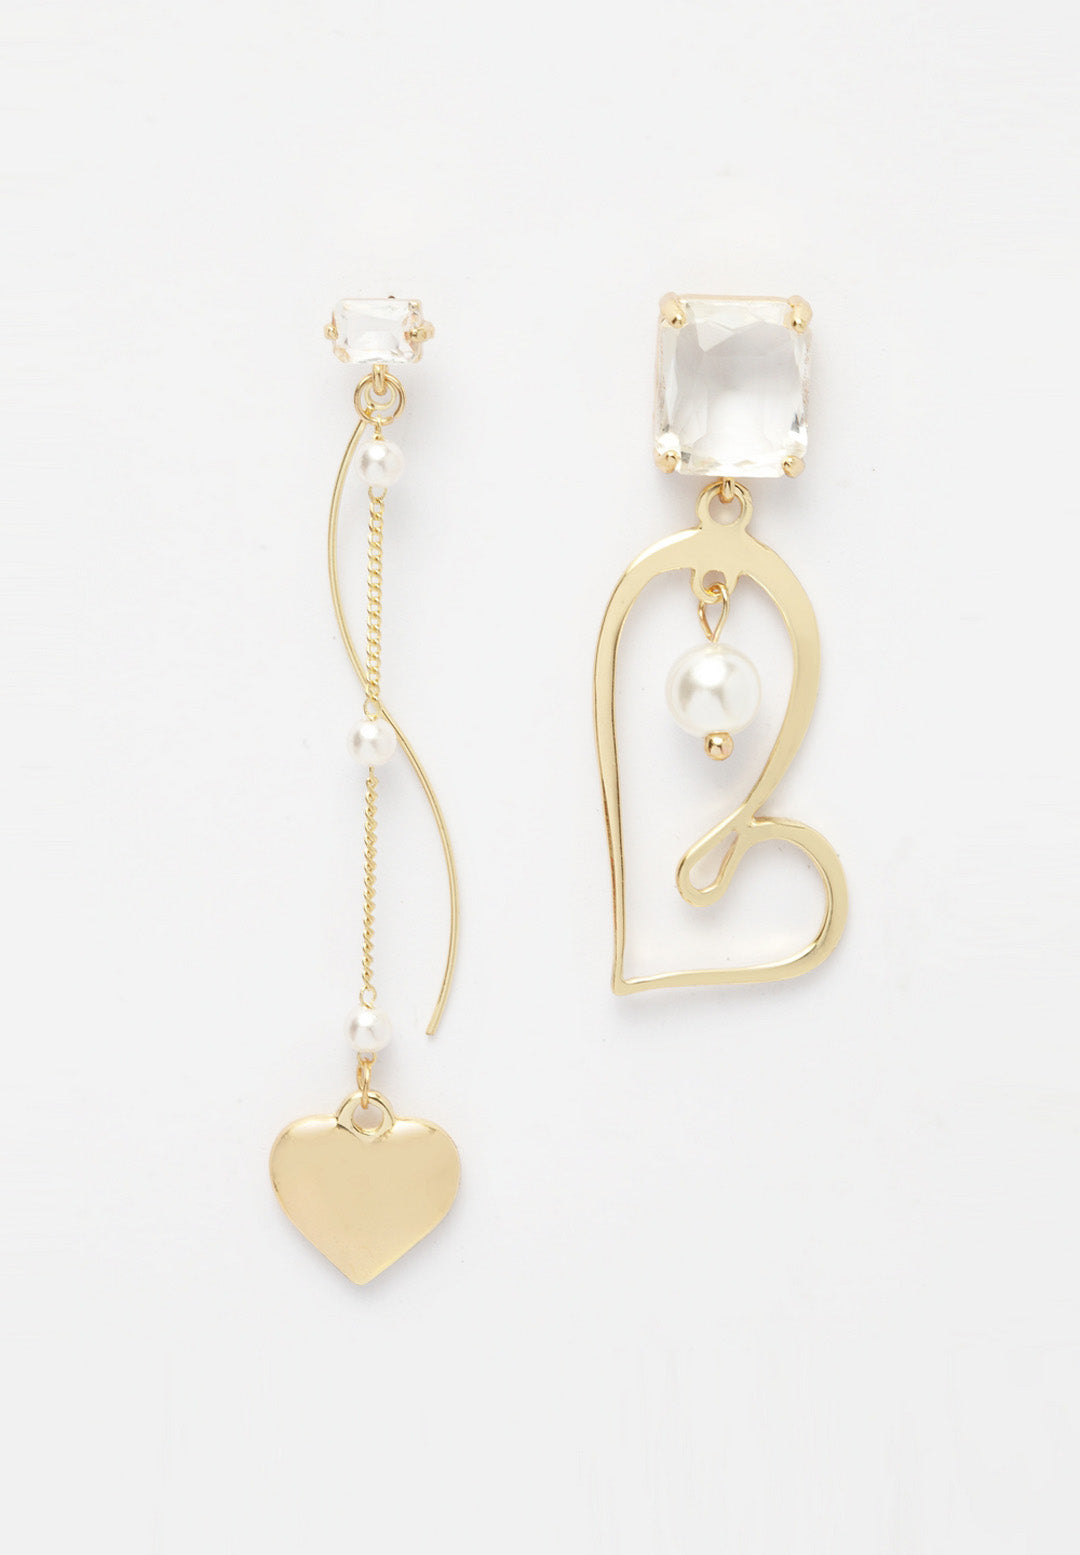 Avant-Garde Paris Quirky Heart And Pearls Crystal Earrings